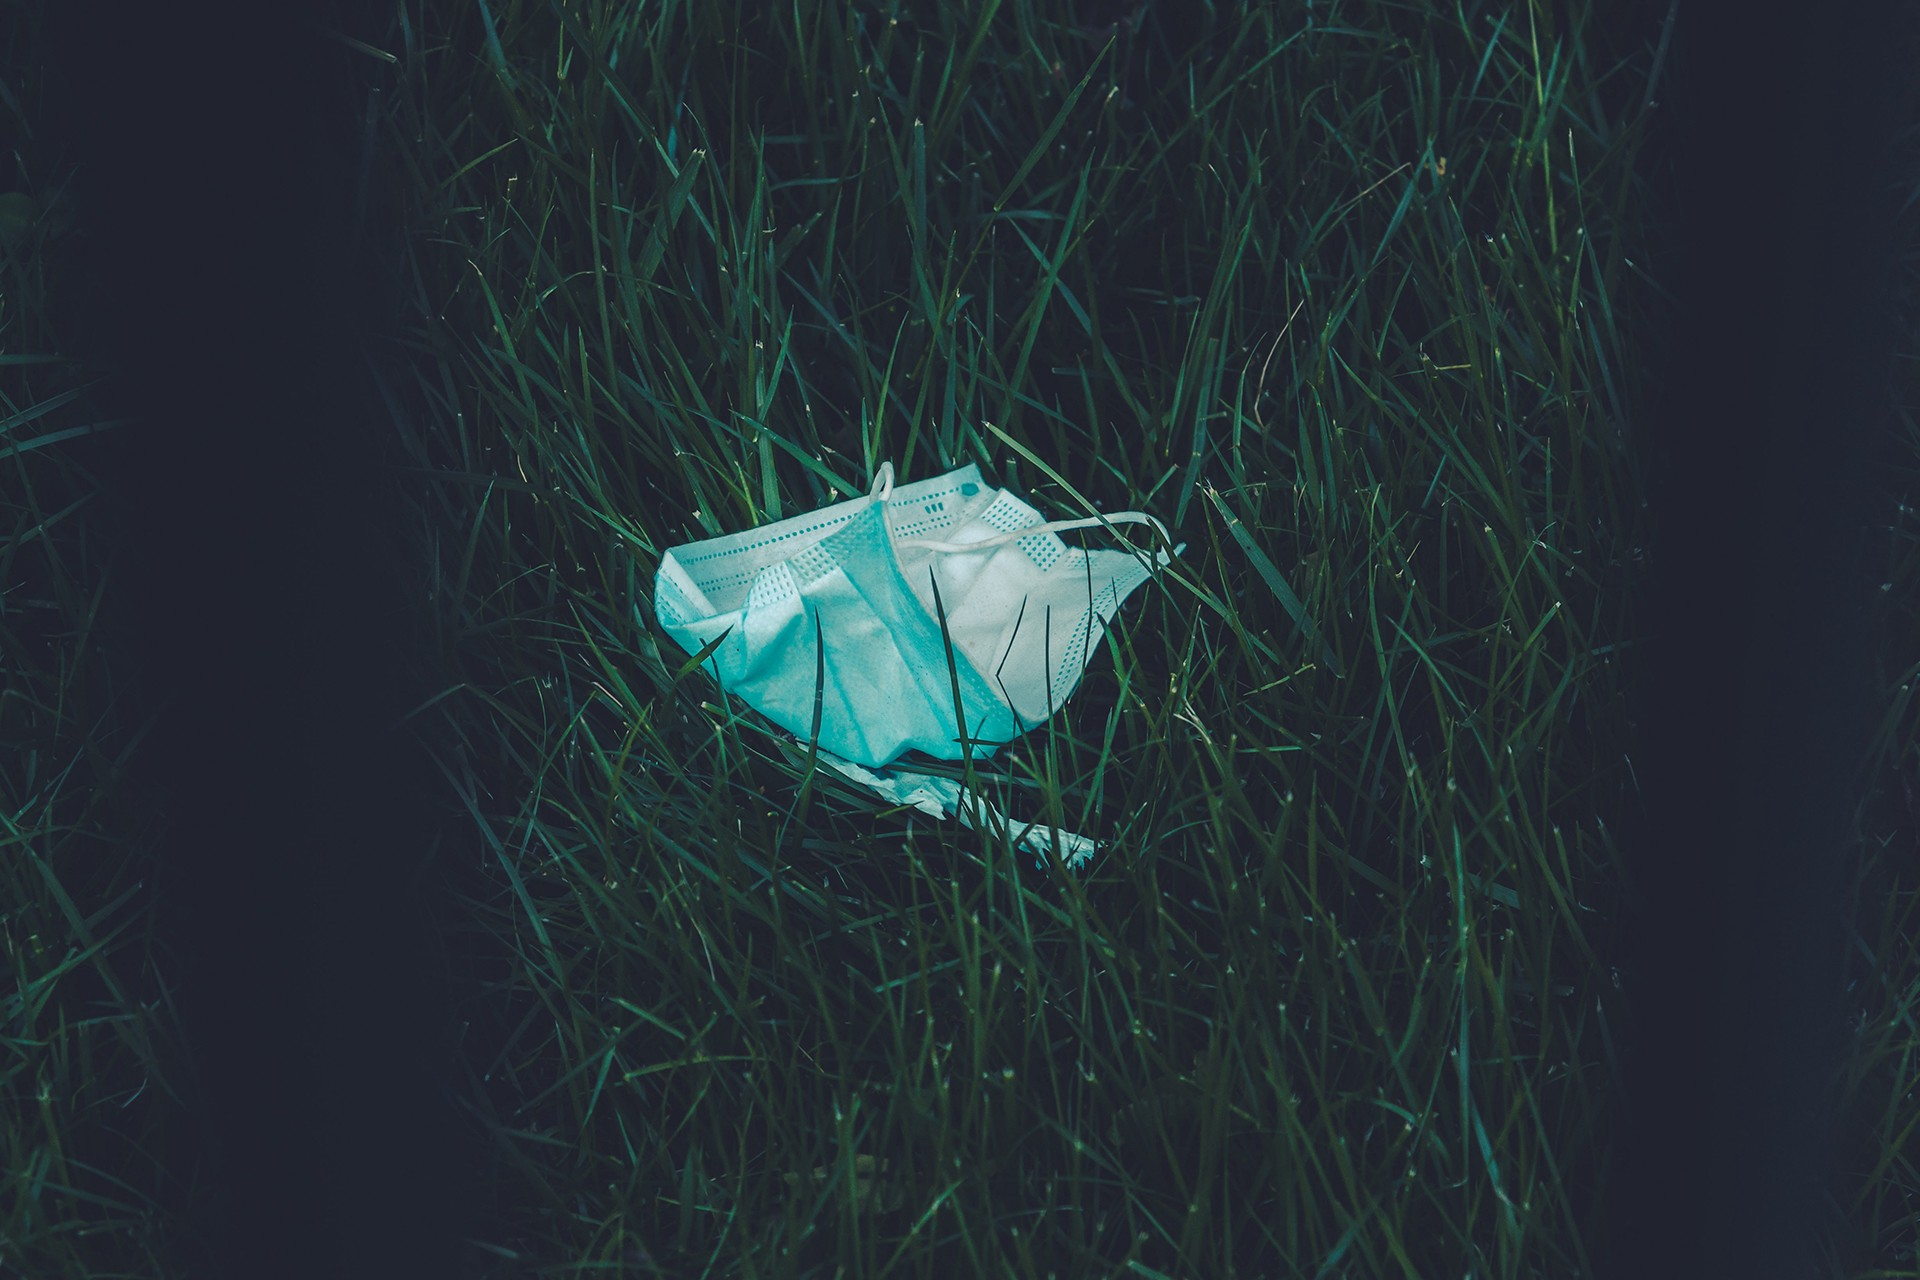 A face-mask littering the natural environment